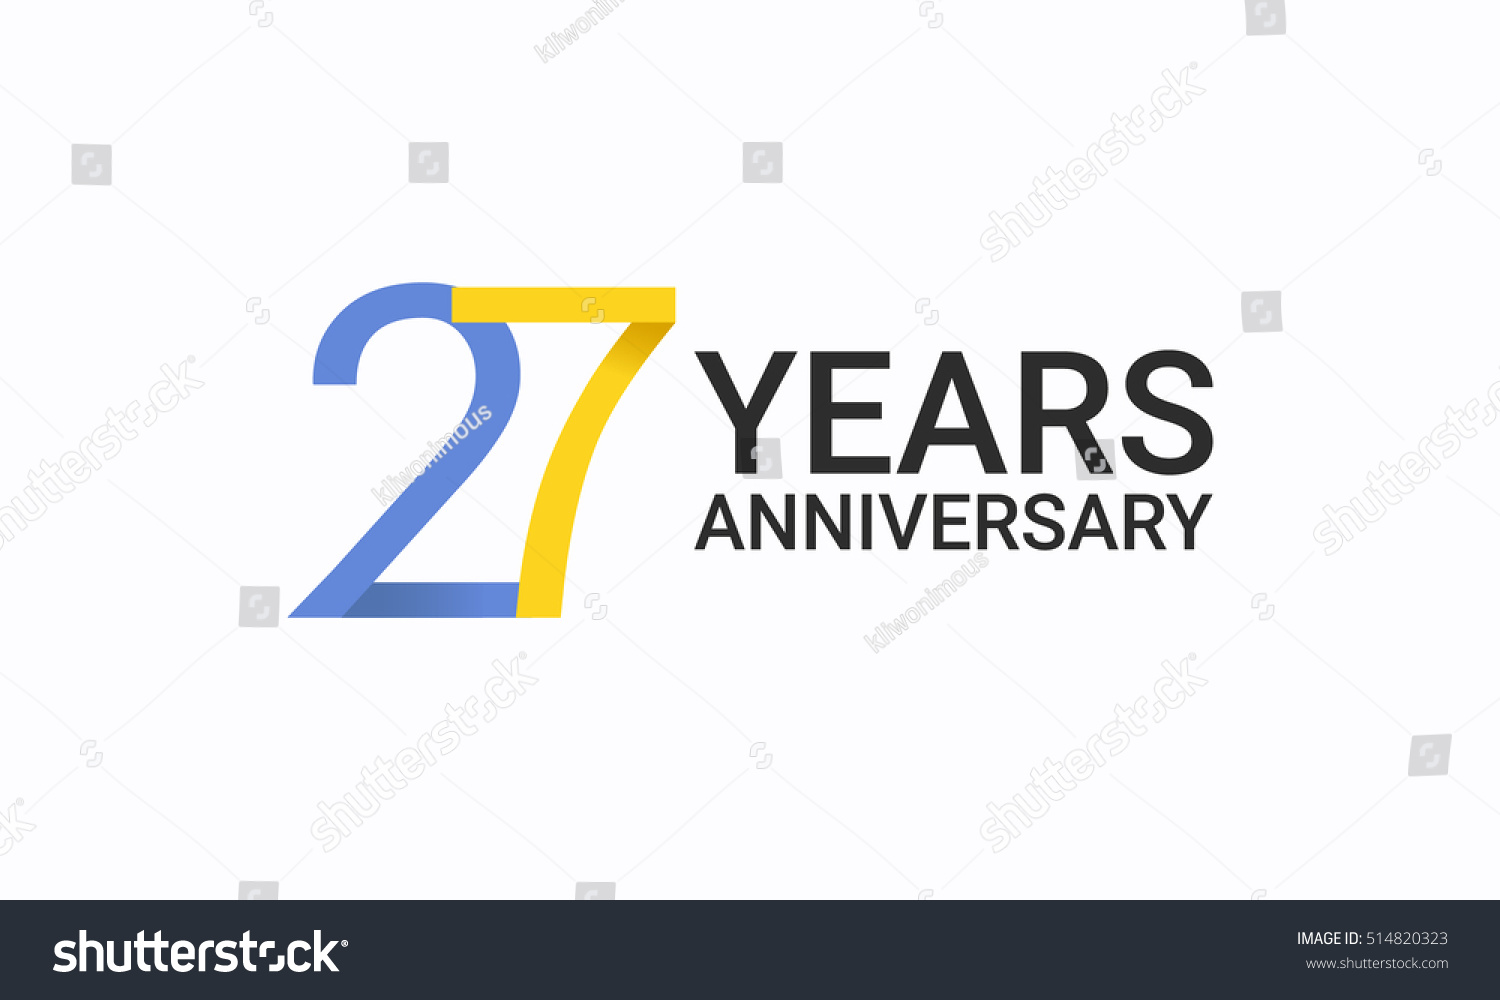 27 years anniversary birthday symbols signs stock vector 514820323 27 years anniversary birthday symbols and signs using flat and simple vector design template biocorpaavc Images